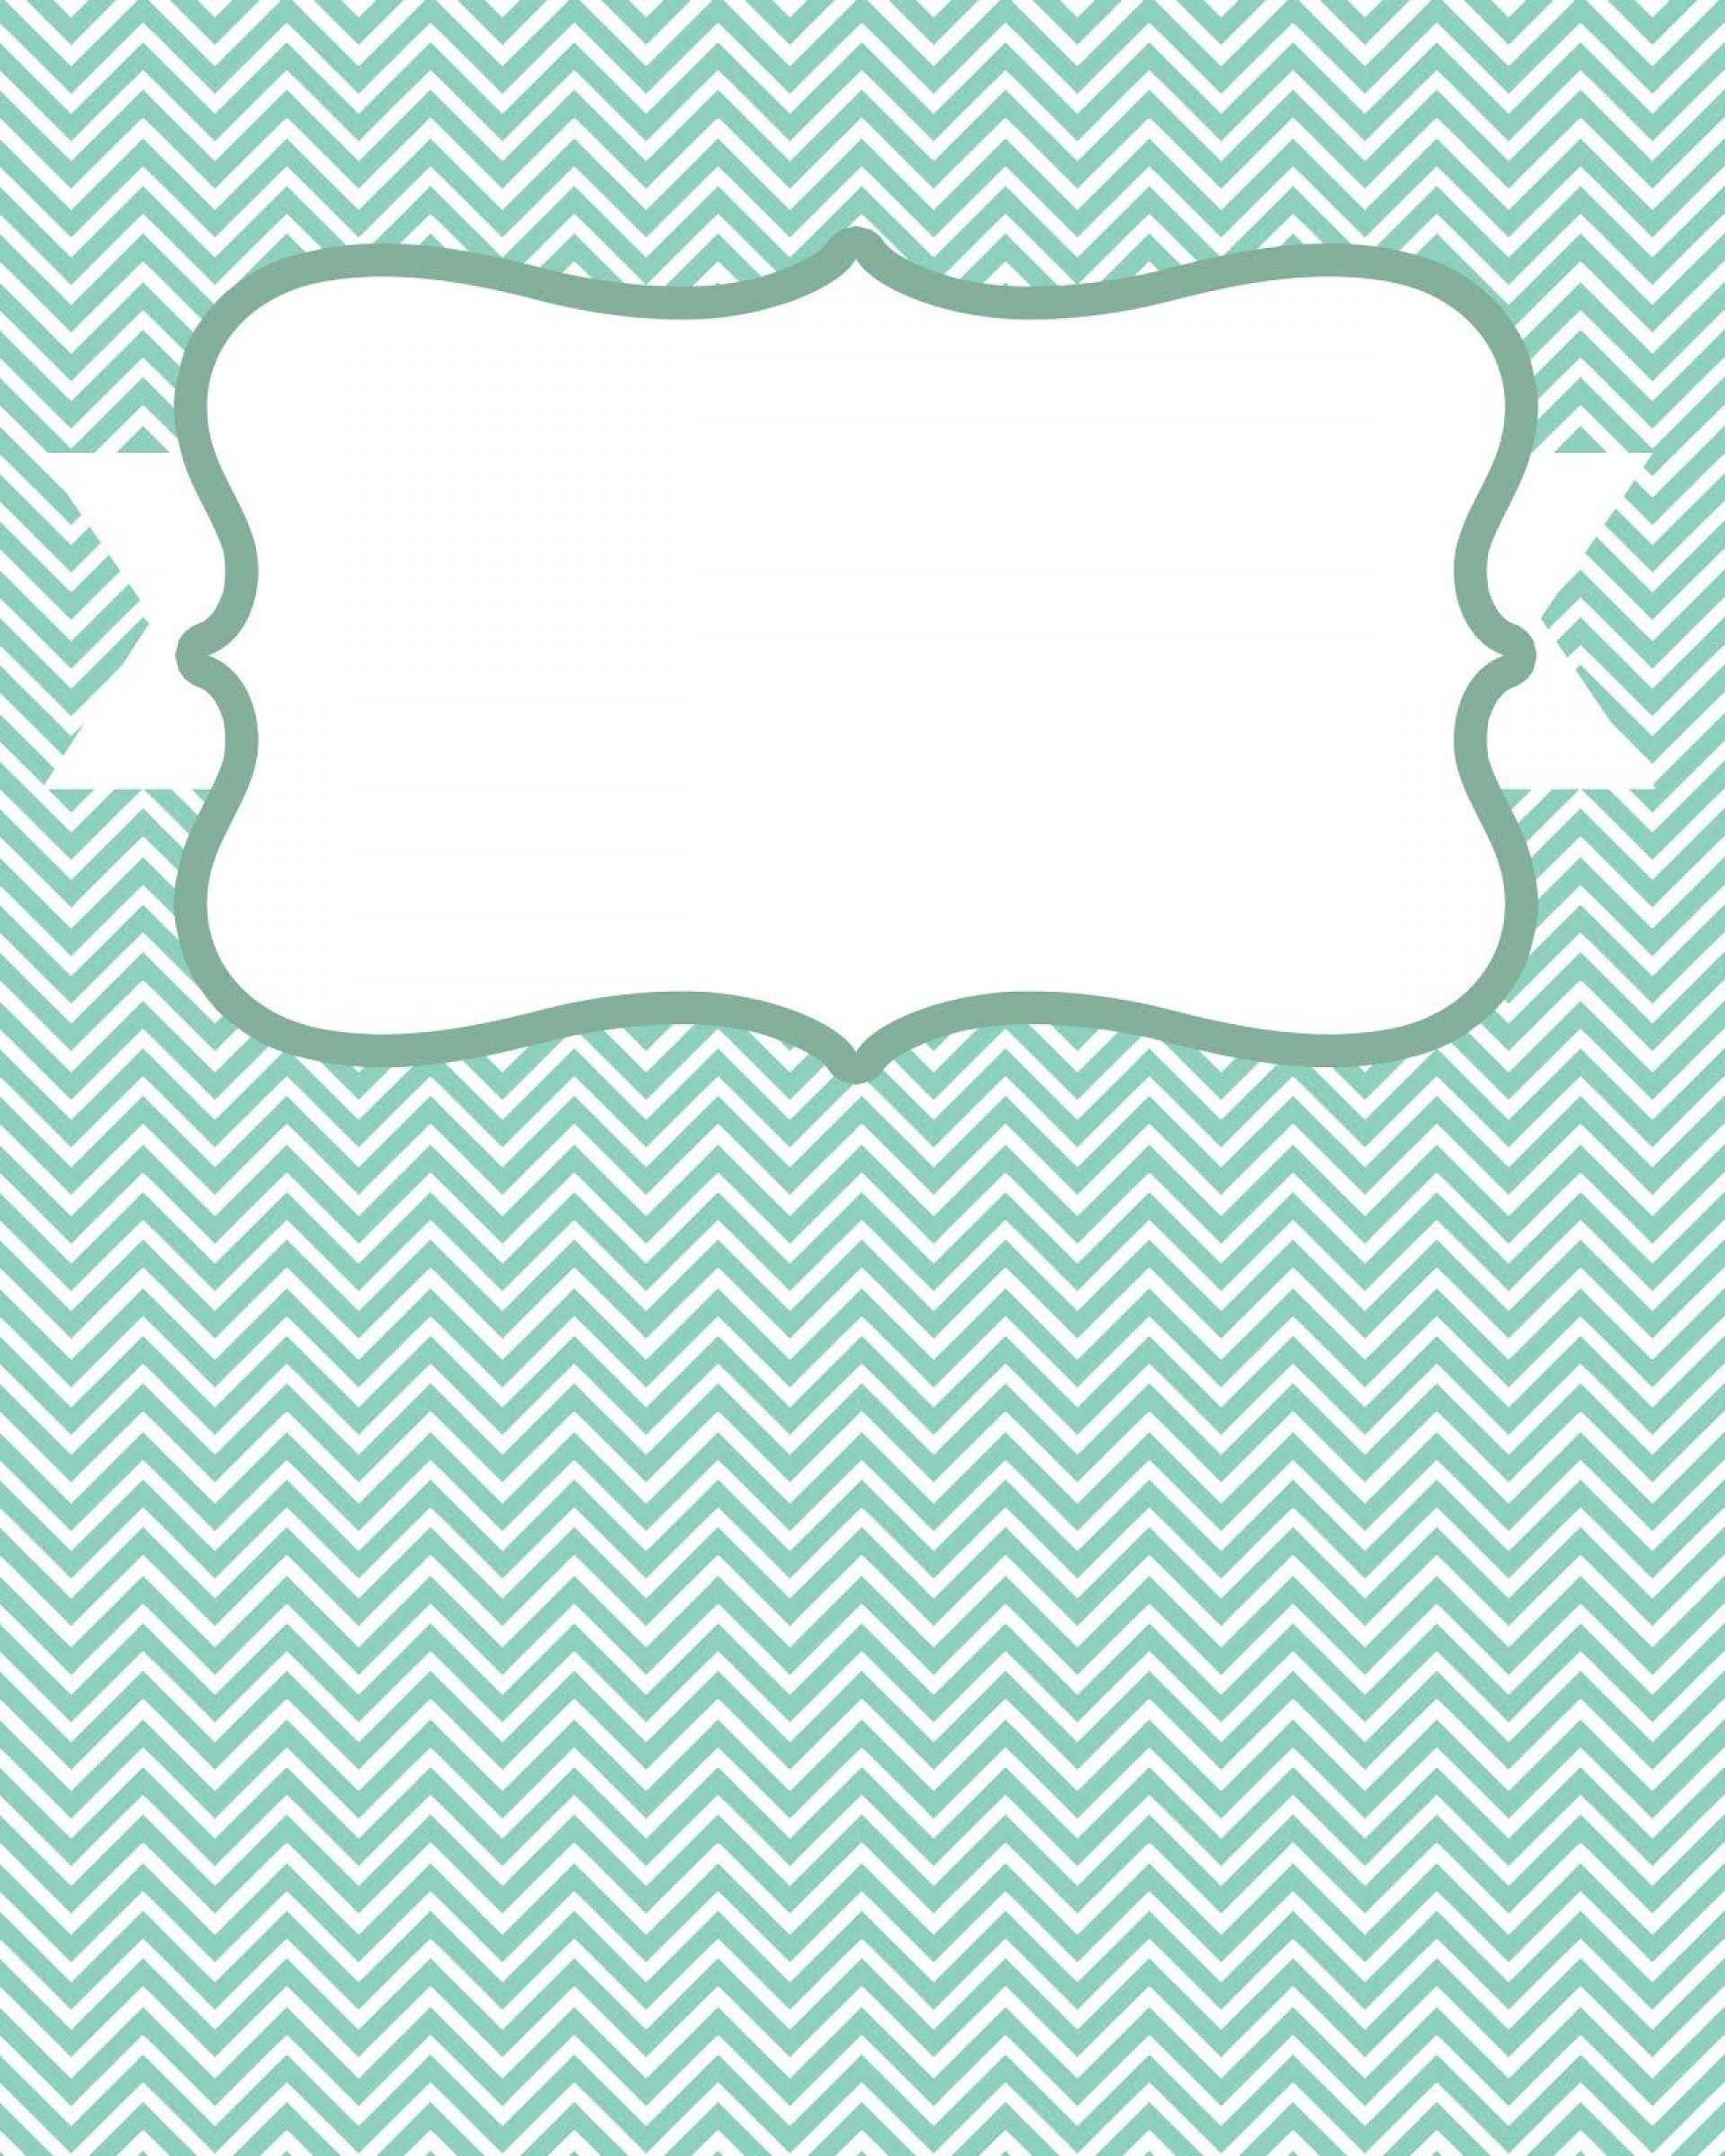 027 Free Printable Customizable Binder Covers Best Of - Free Printable Binder Cover Templates